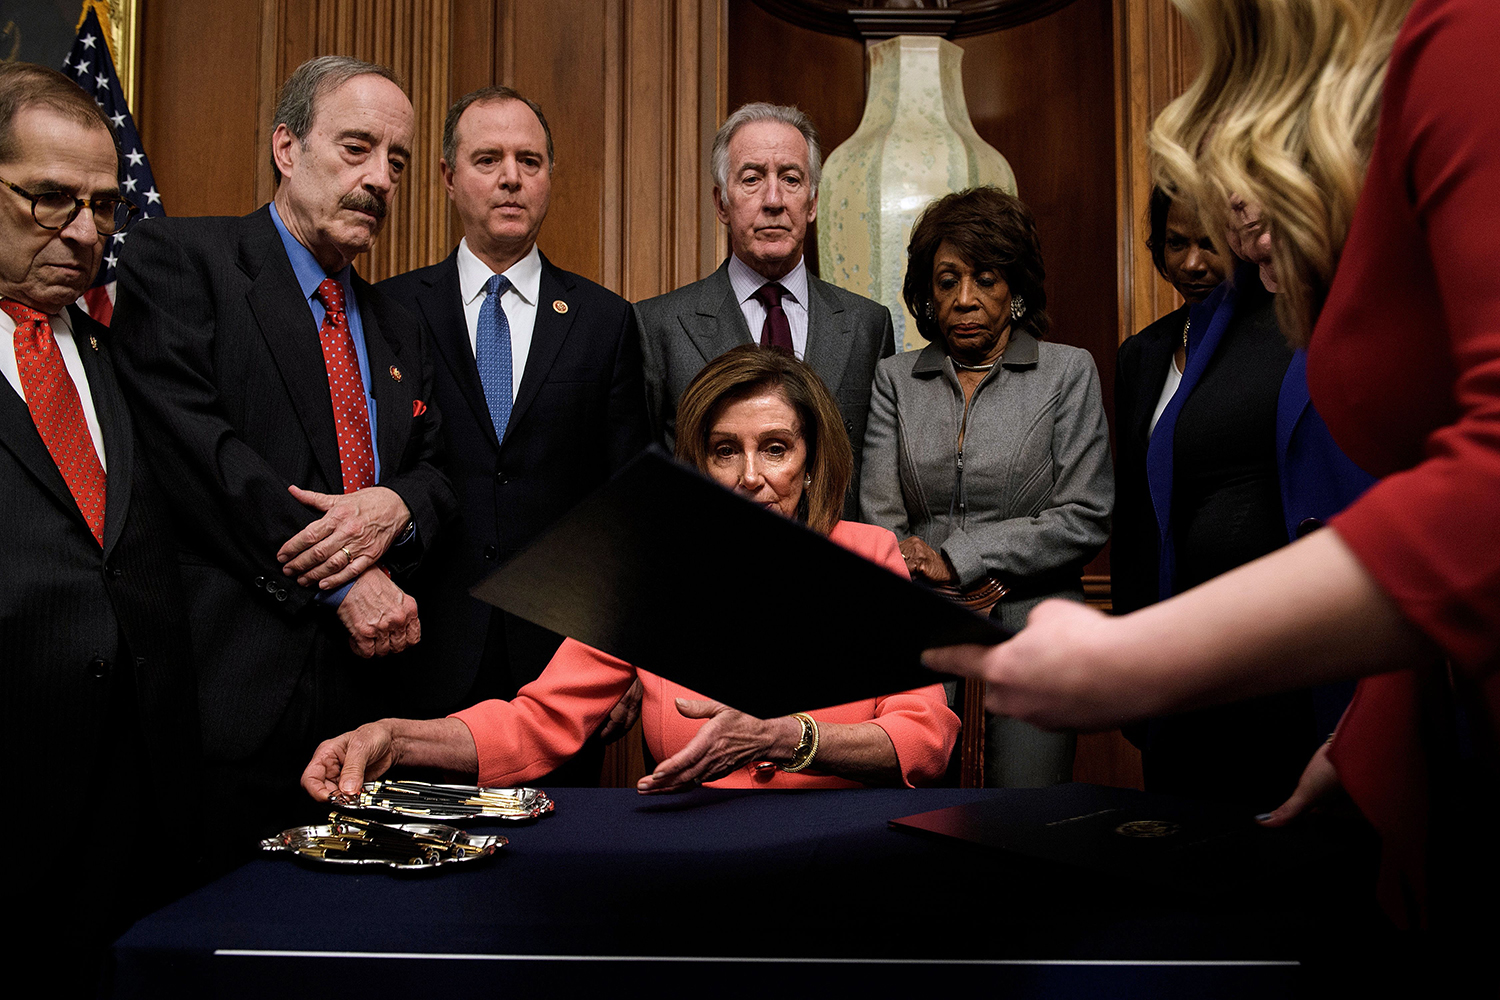 U.S. Speaker of the House Nancy Pelosi is handed a document while signing the articles of impeachment of President Donald Trump during a ceremony on Capitol Hill in Washington on Jan. 15. BRENDAN SMIALOWSKI/AFP via Getty Images